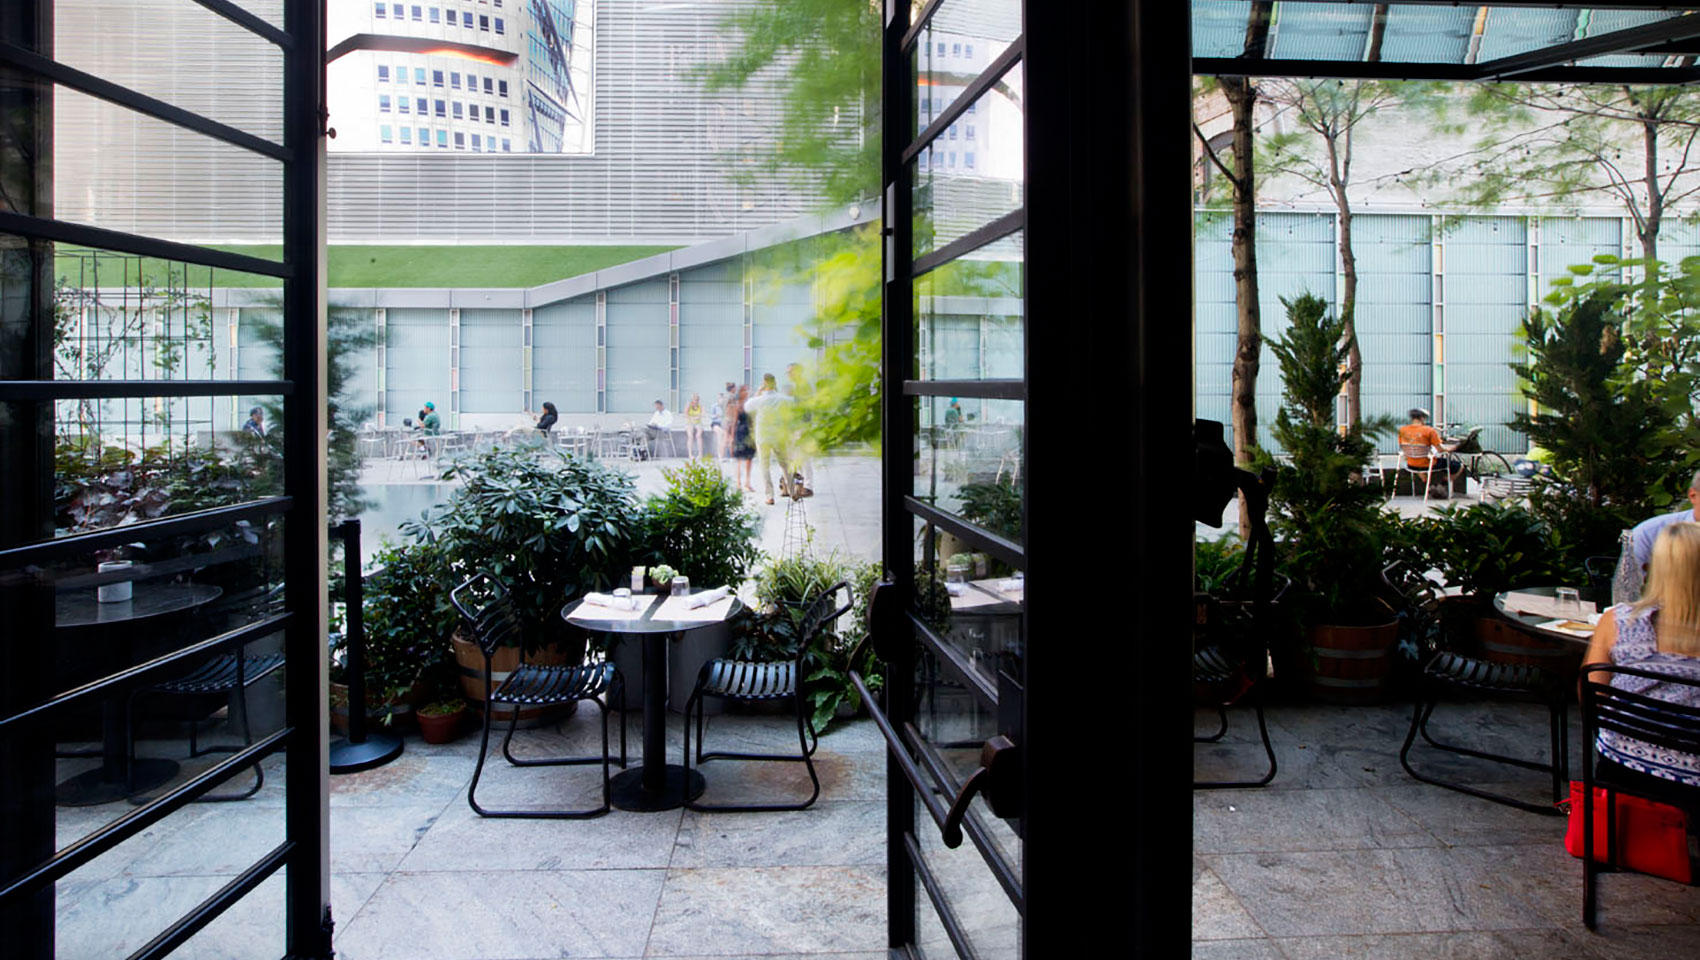 Big screen plaza at Kimpton Hotel Eventi seen through large open windows with plaza greenery and seating